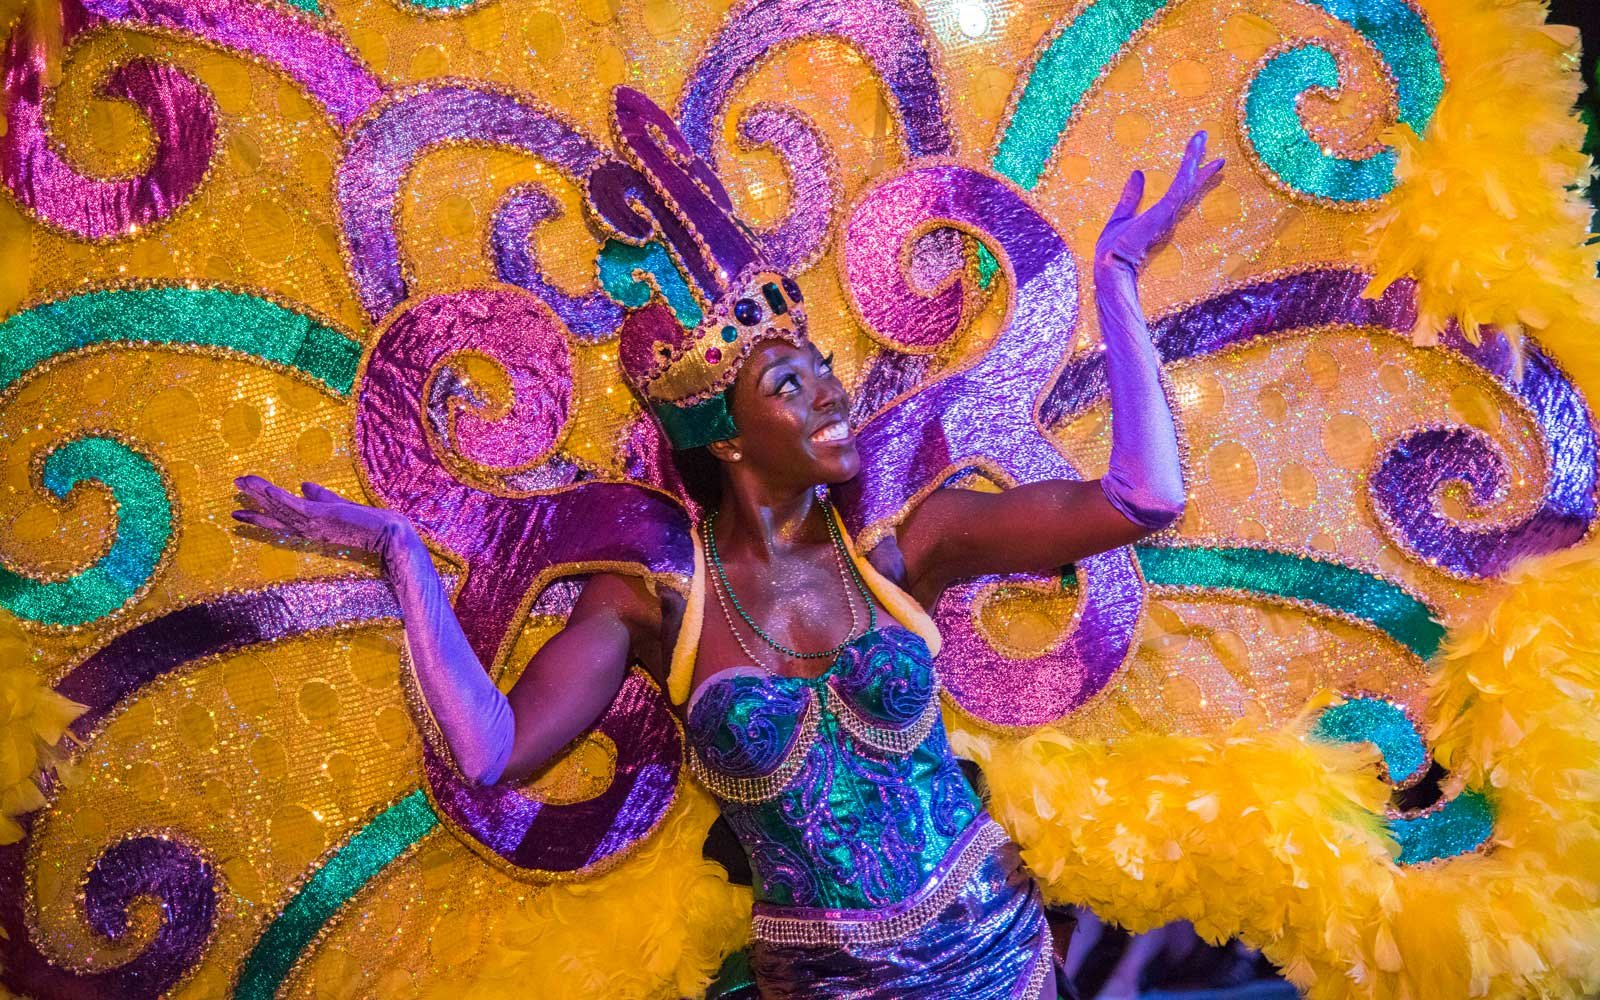 Woman in costume at Mardi Gras celebration at Universal Orlando